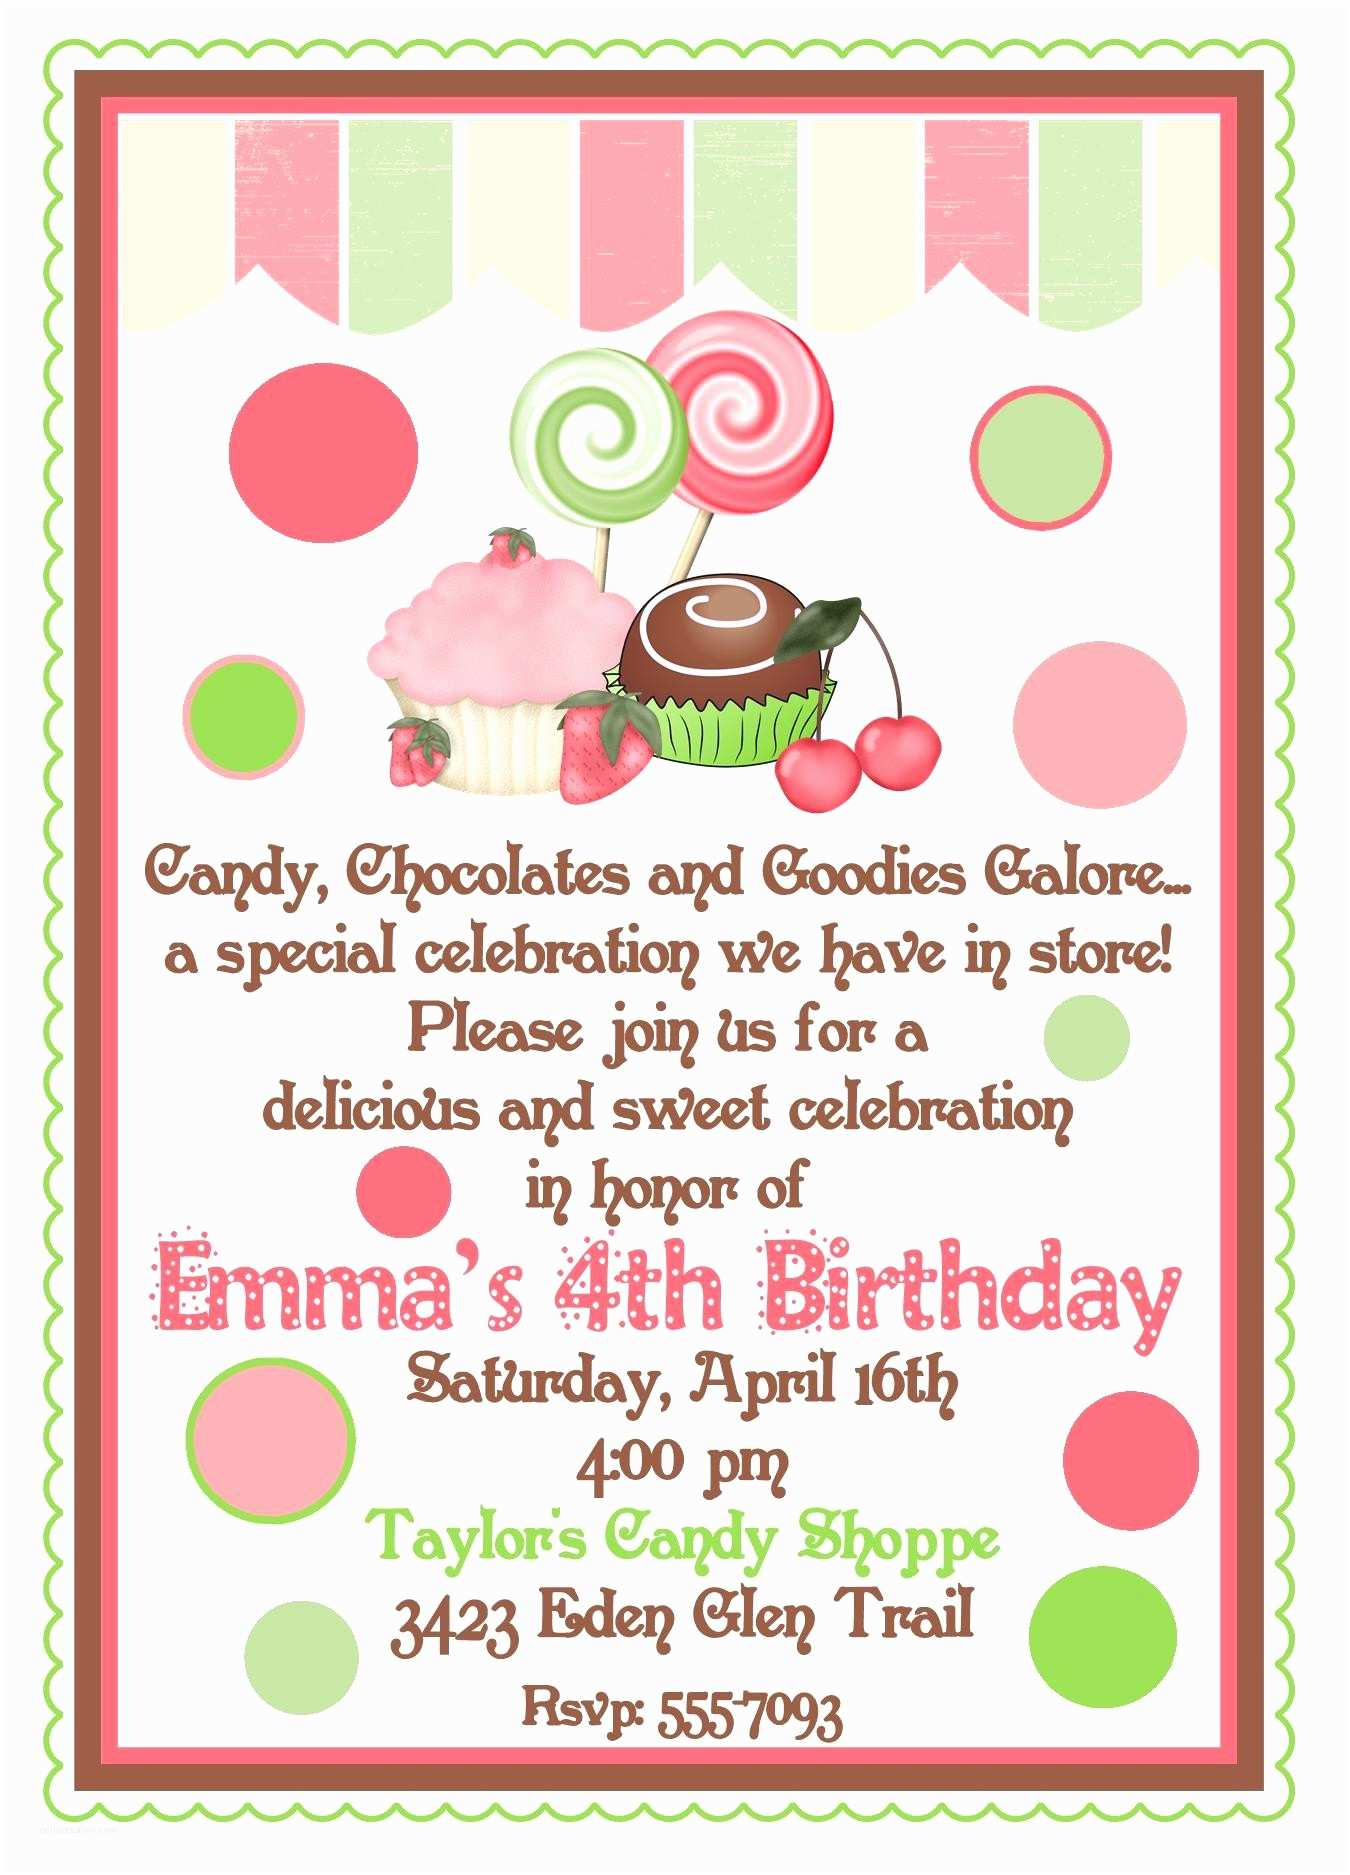 Personalized Birthday Invitations Personalized Birthday Invitations Candy Shoppechocolate